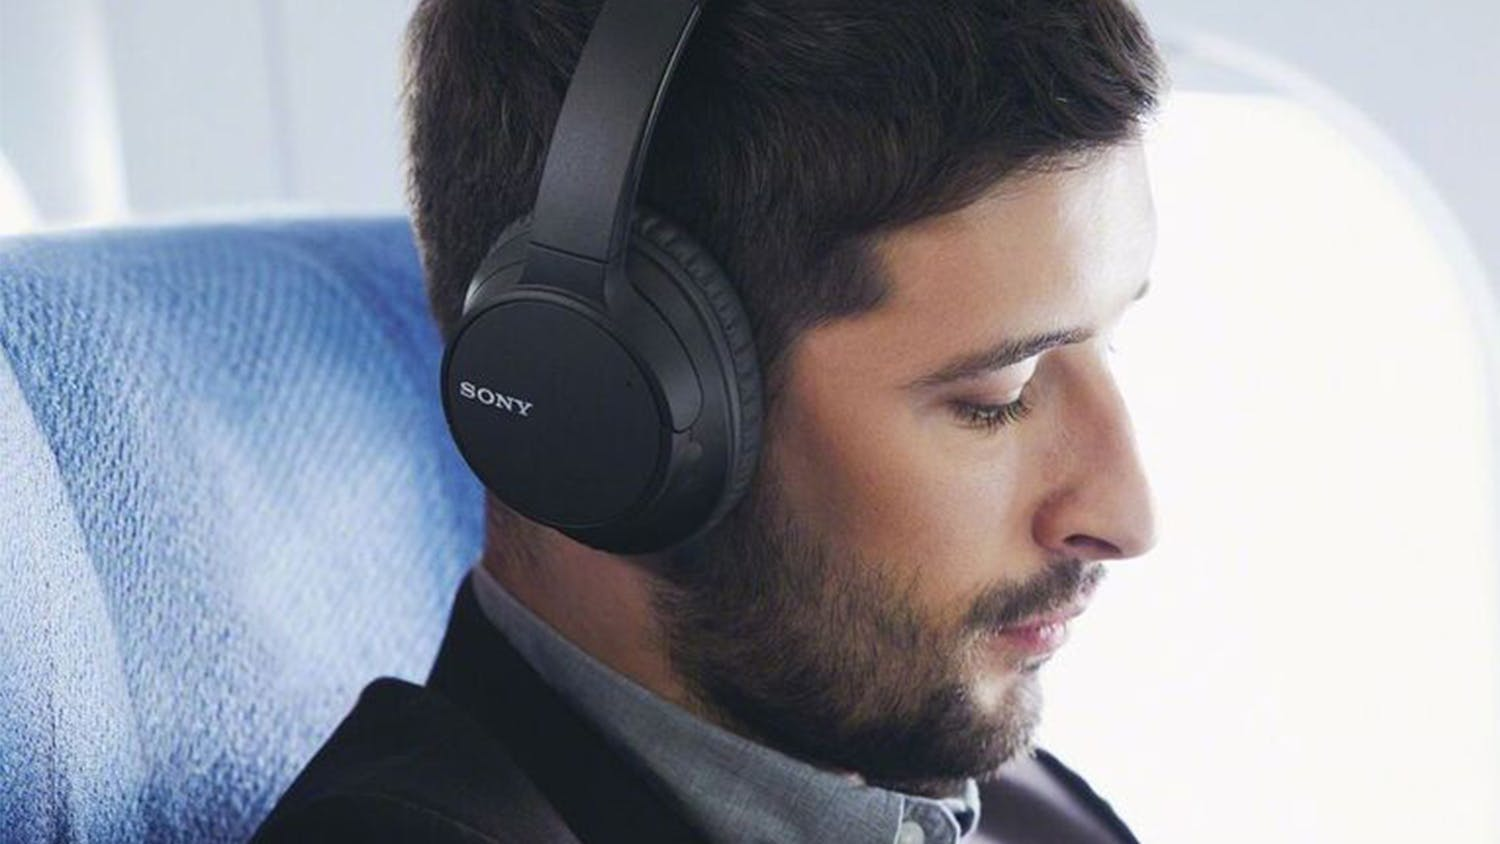 Sony WHCH700N Wireless Noise Cancelling Over-Ear Headphones